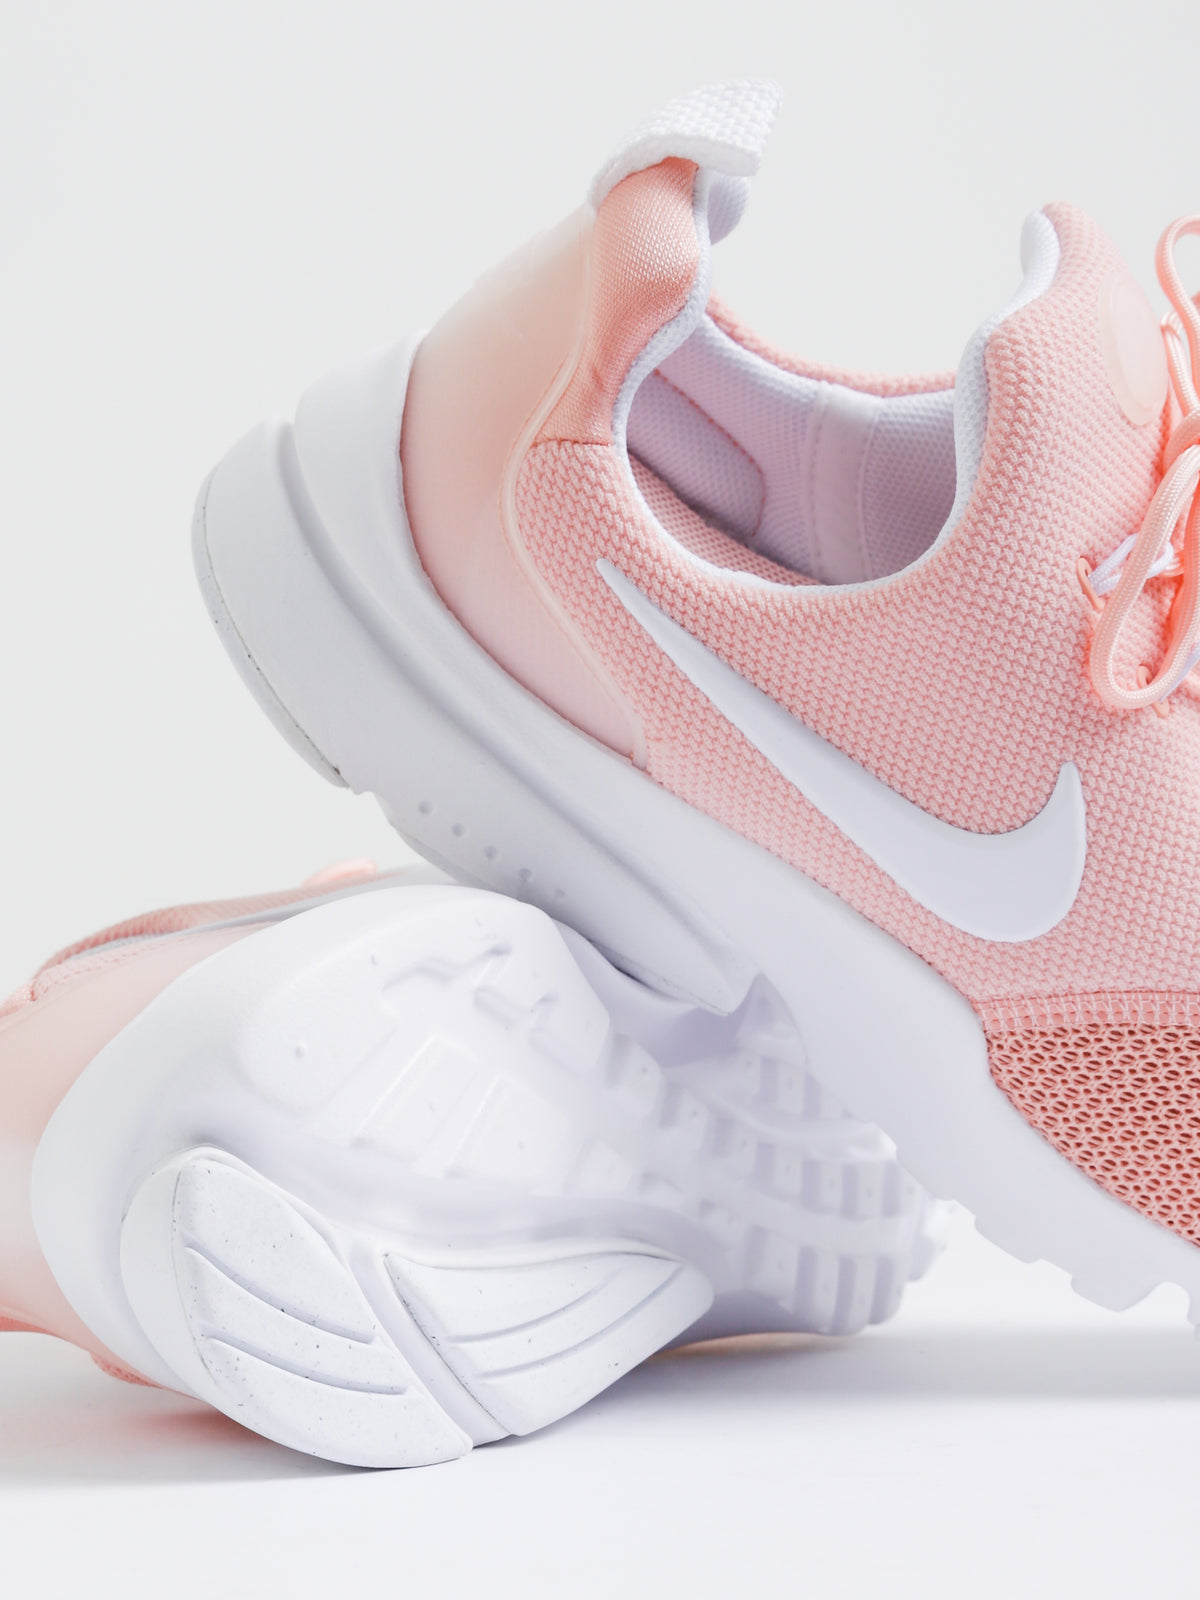 Womens Presto Fly Sneakers in Coral